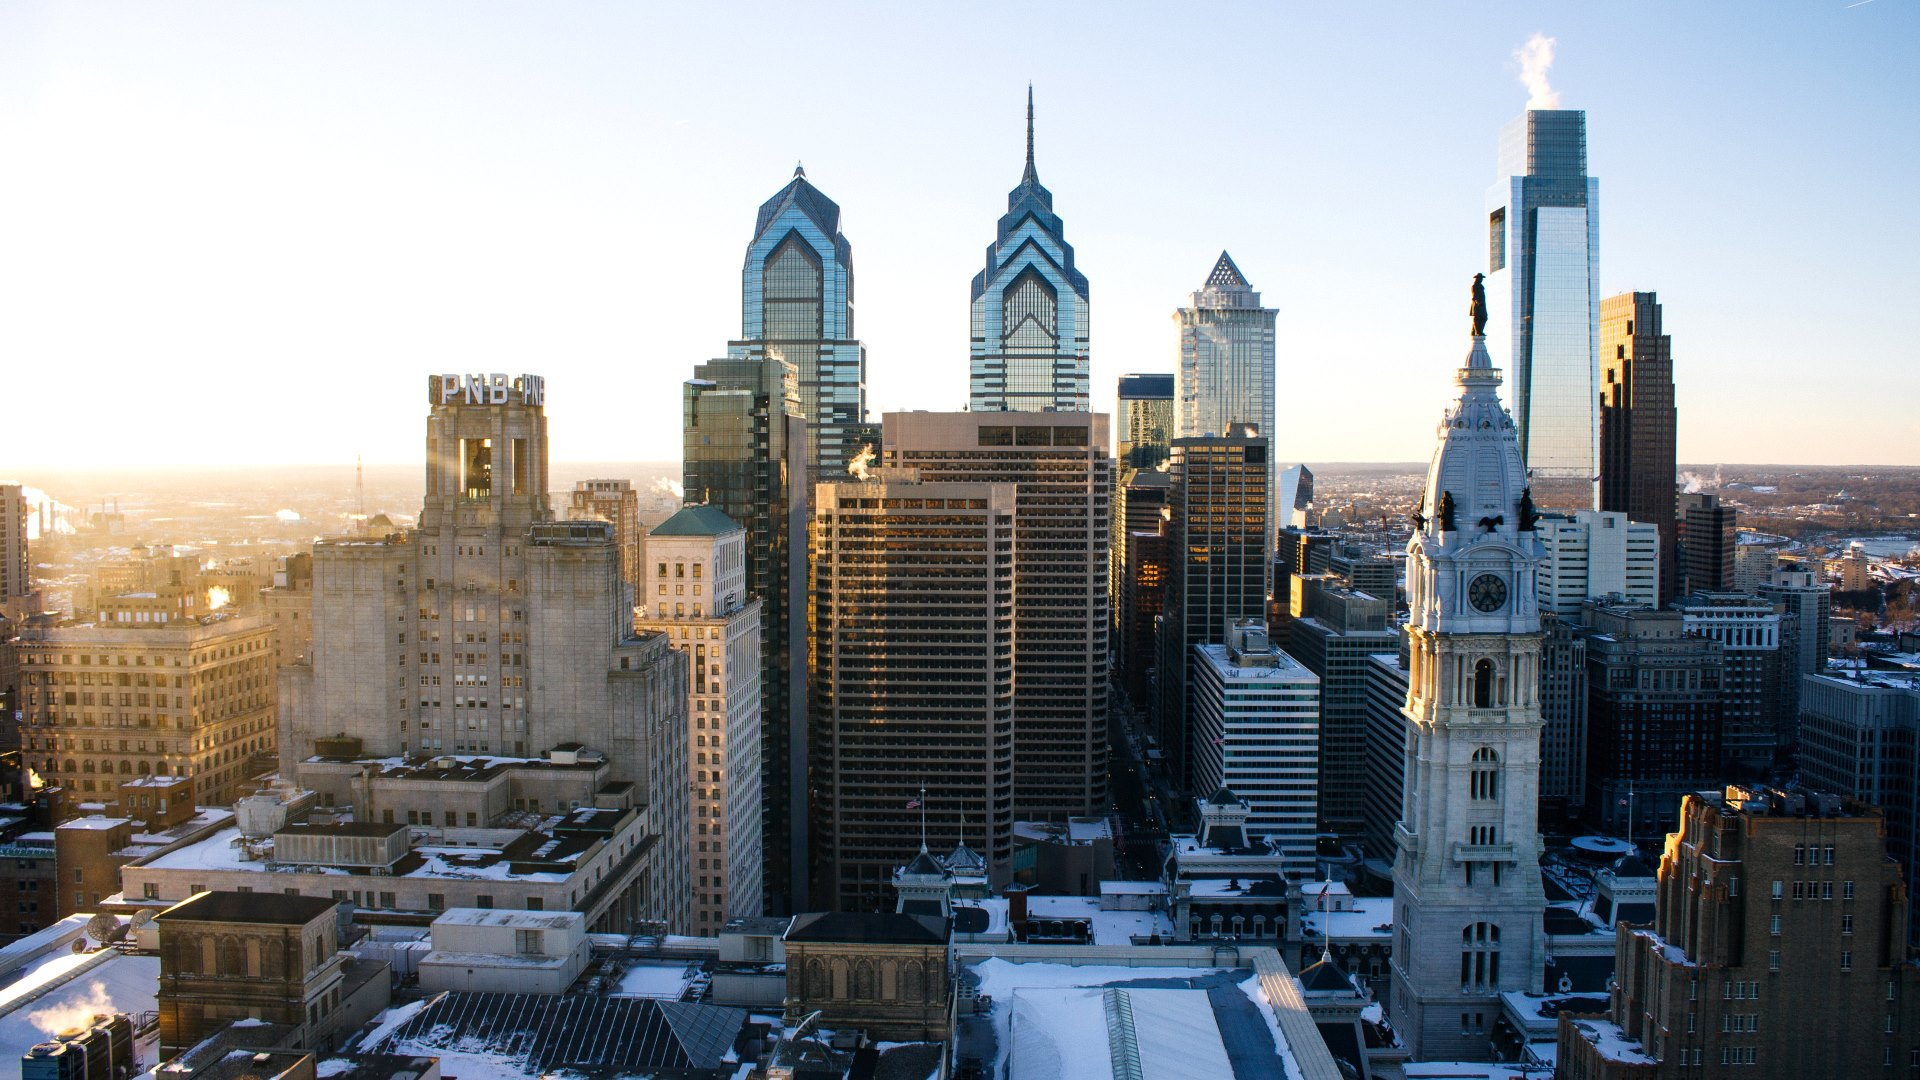 Cityscape Philadelphia Sunset Wallpapers HD Wallpapers 1920x1080